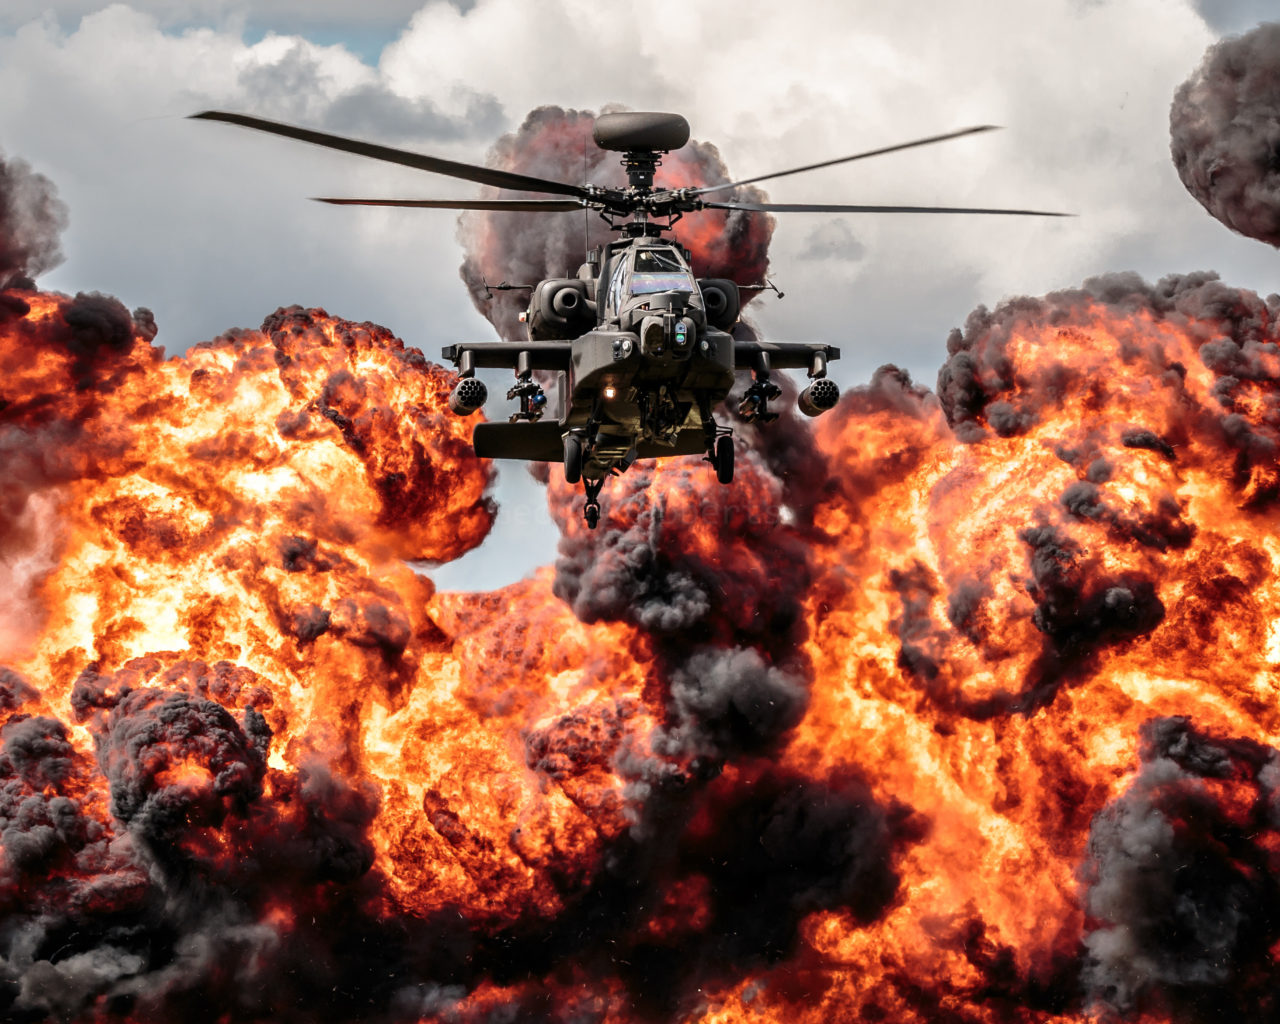 Fire And Water Hd Wallpapers Helicopter Apache Explosion Fire Hd Desktop Wallpaper